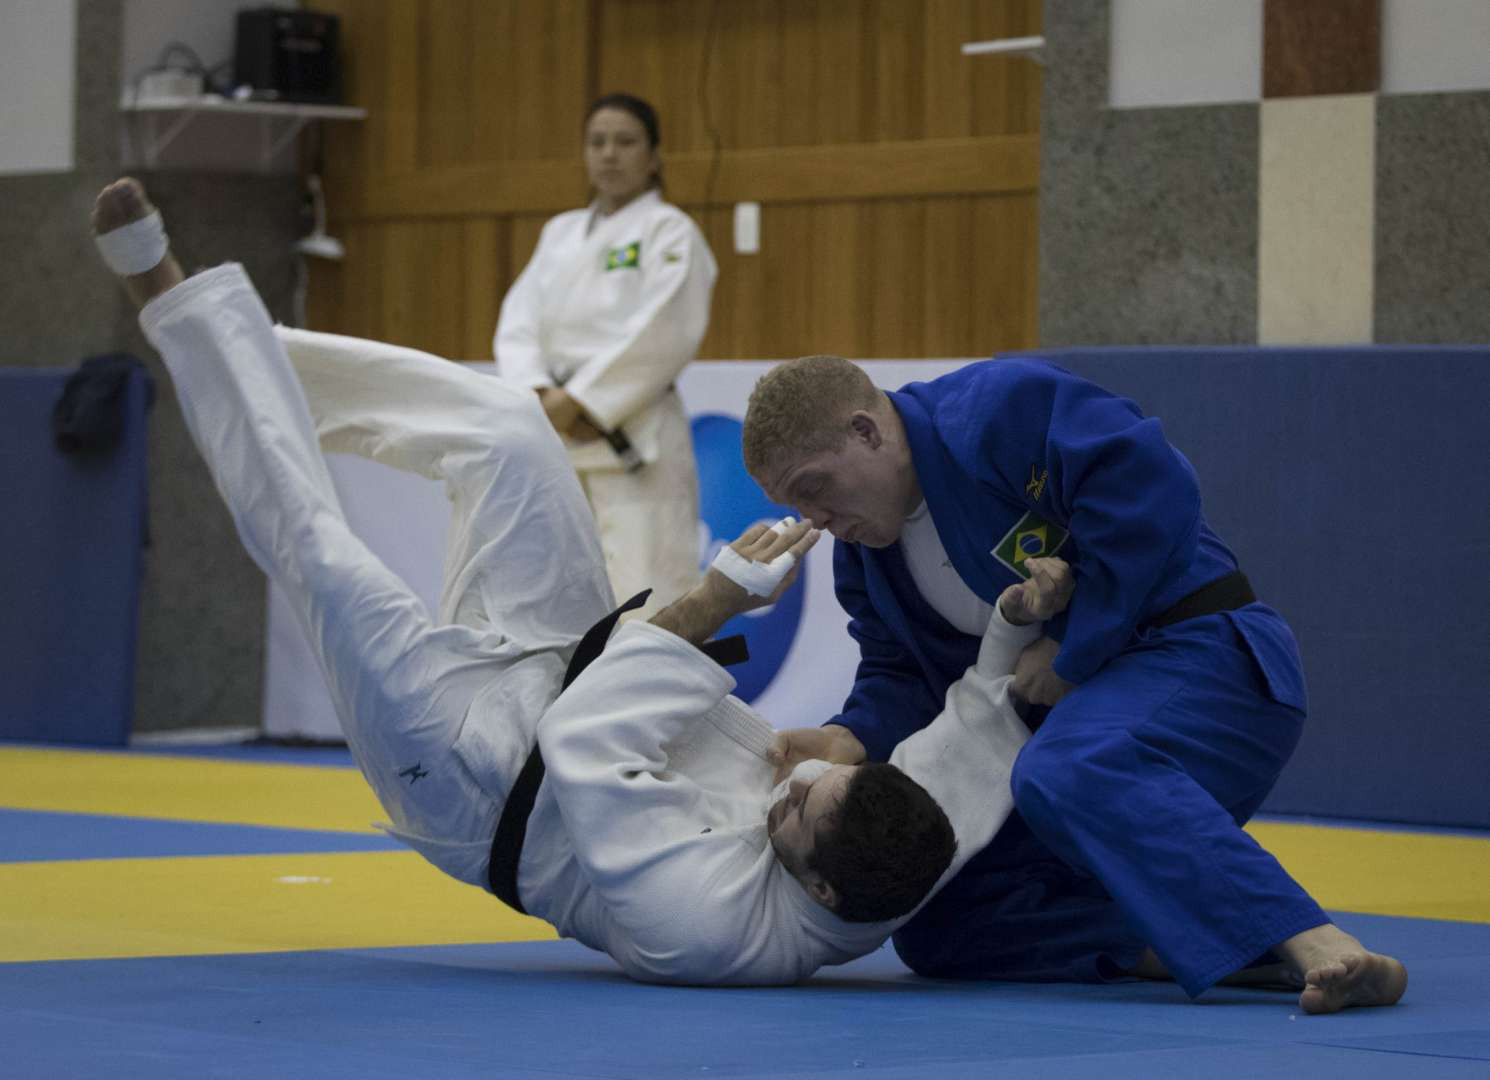 Brazil's judo team will next be in action at the International Judo Federation World Judo Tour event in Zagreb in July ©IJF